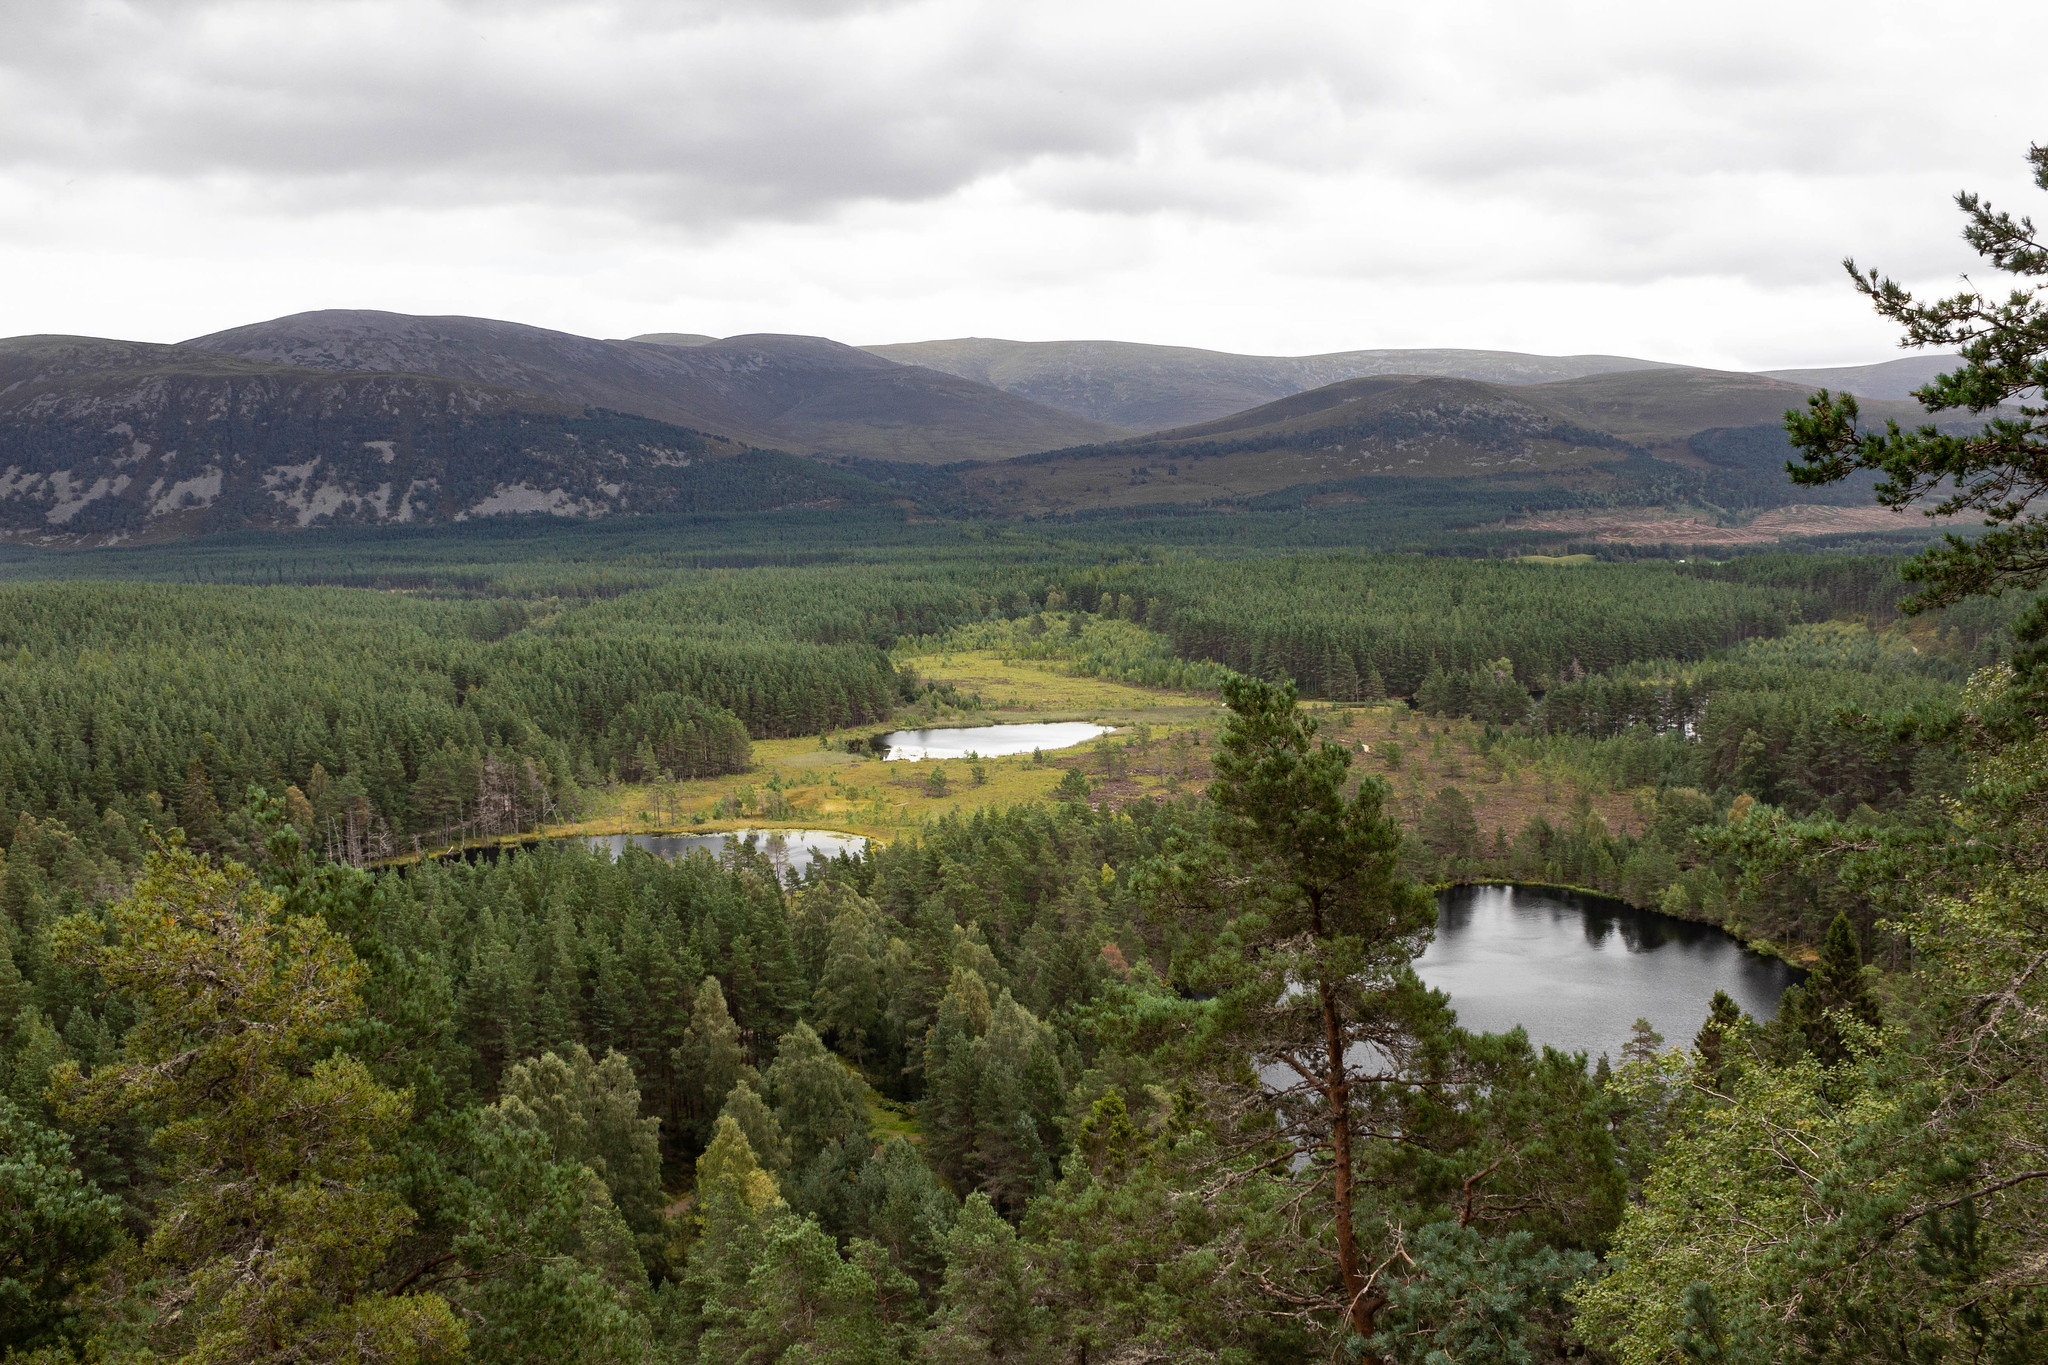 View over Uath Lochans, Cairngorms National Park, Scotland.